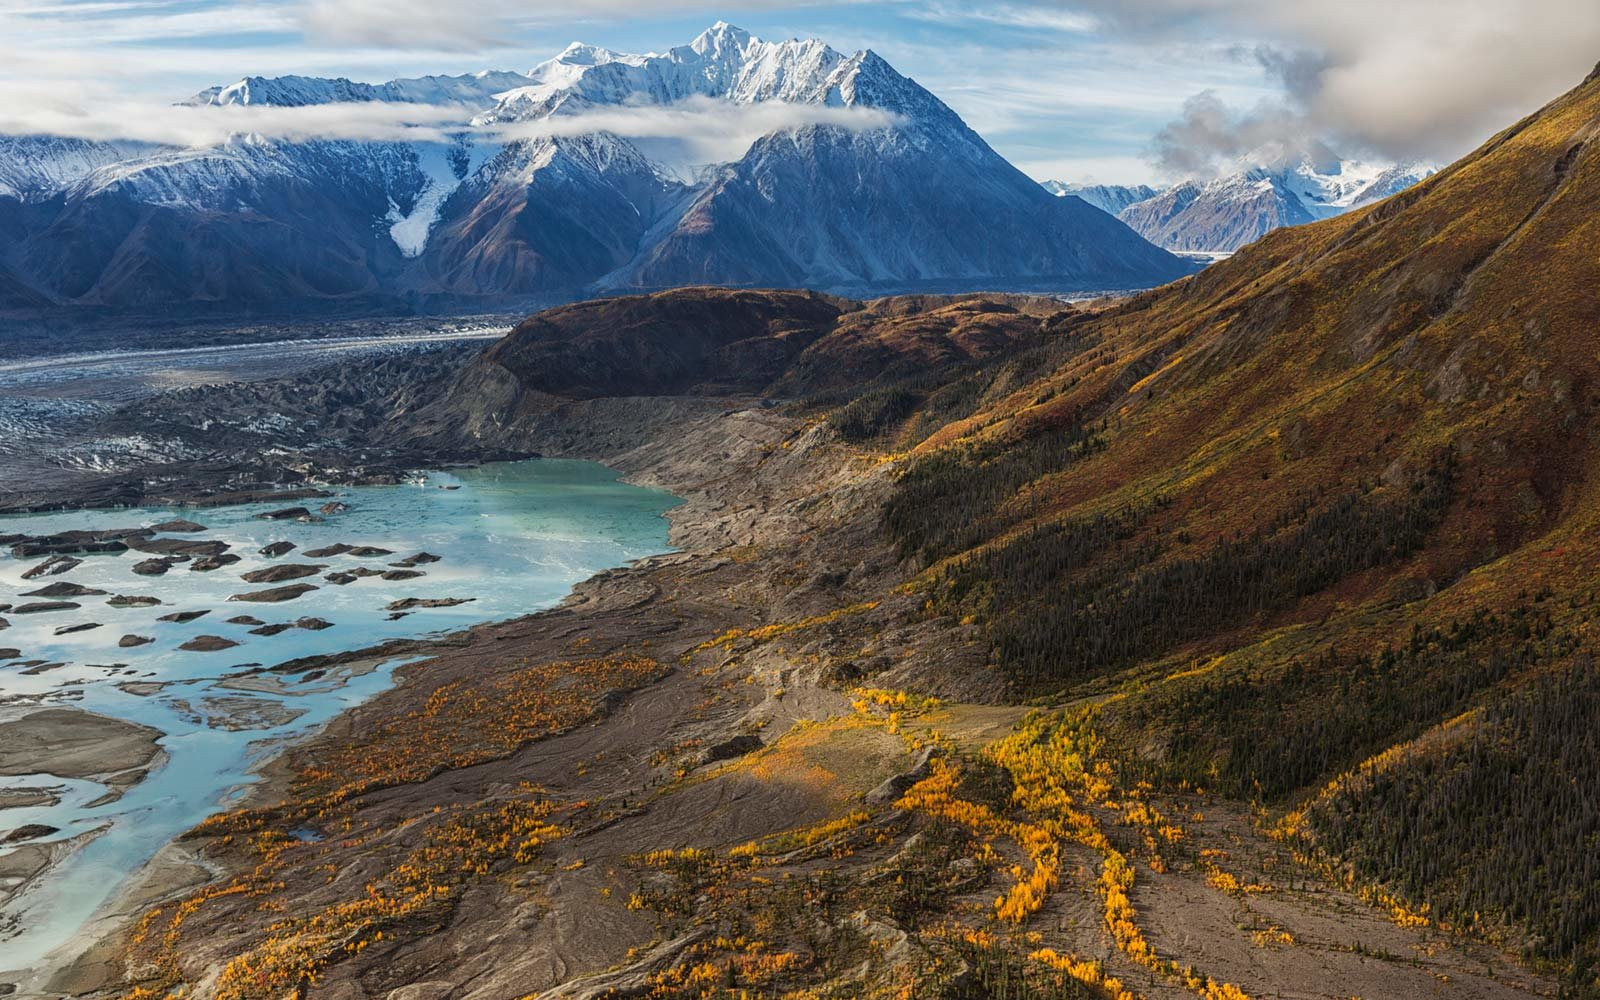 Kluane National Park and Reserve, Yukon Territory, Canada